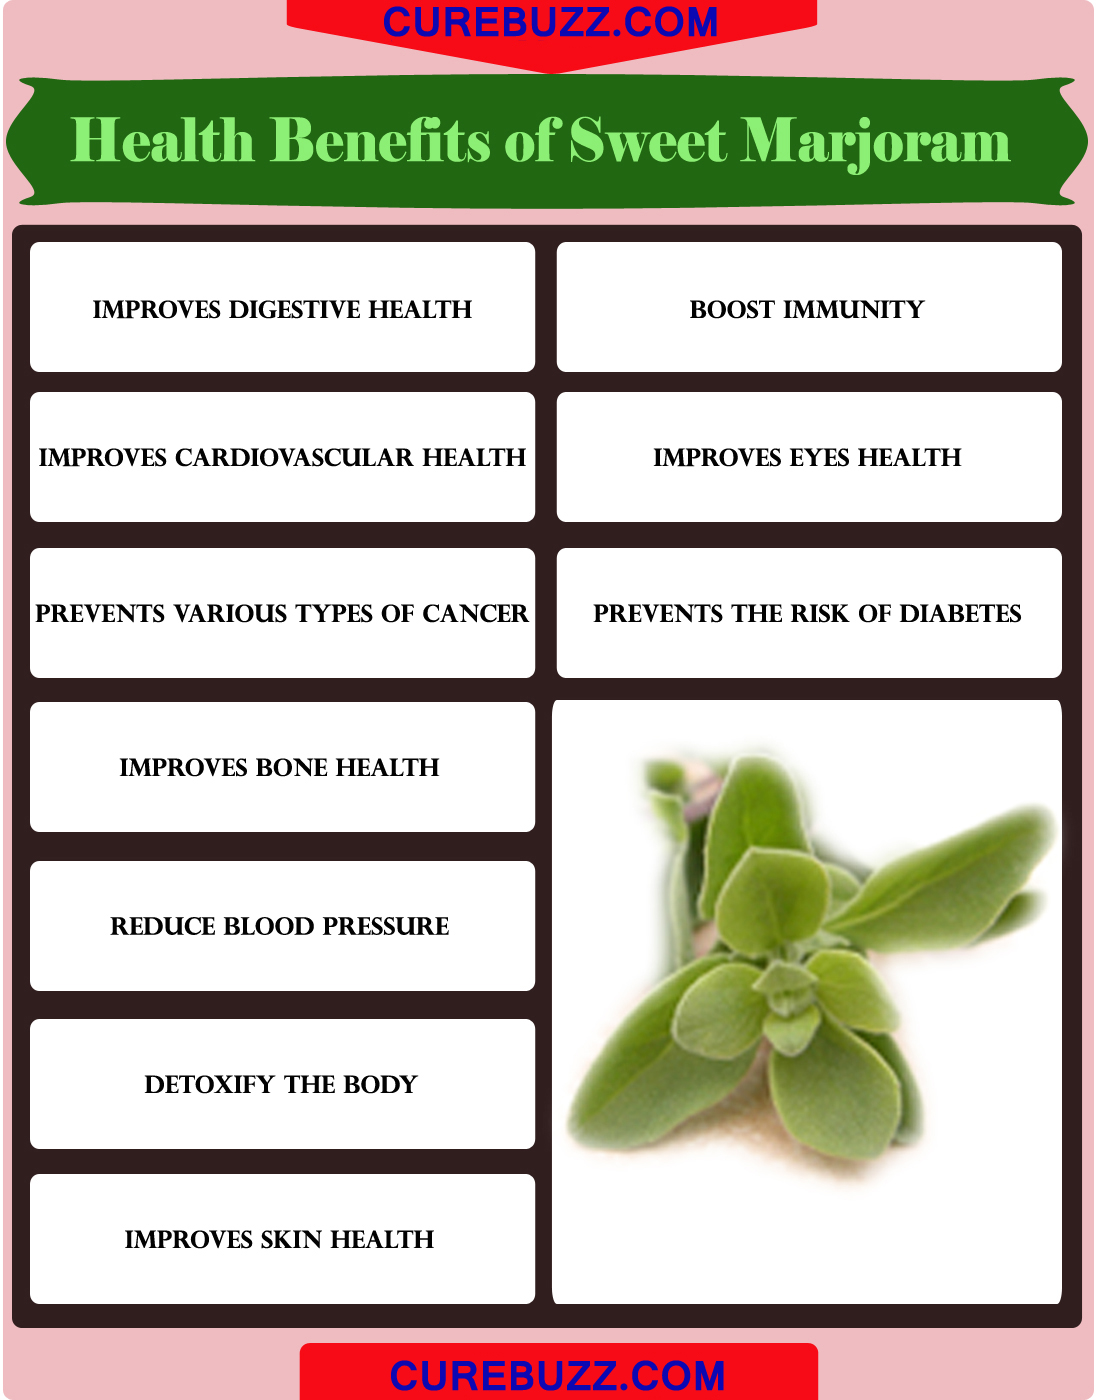 Health Benefits of Sweet Marjoram